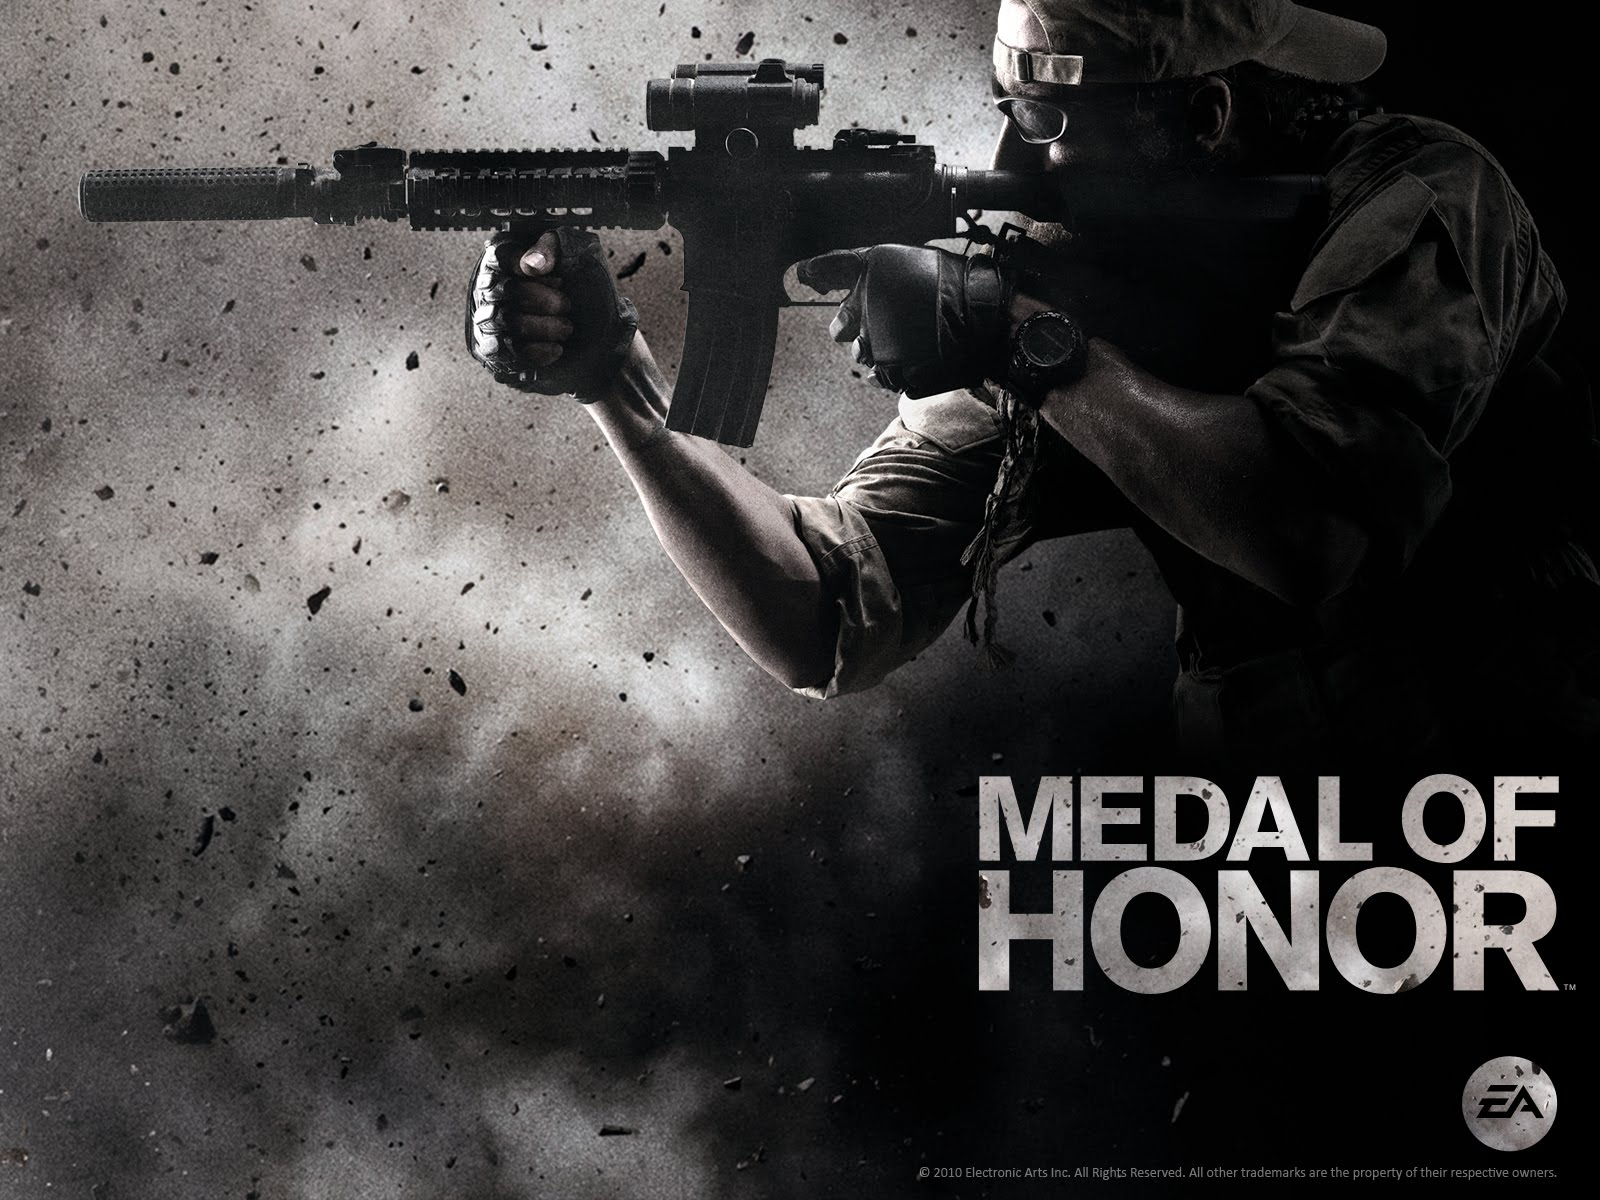 Medal of Honor Limited edition Tas-ix